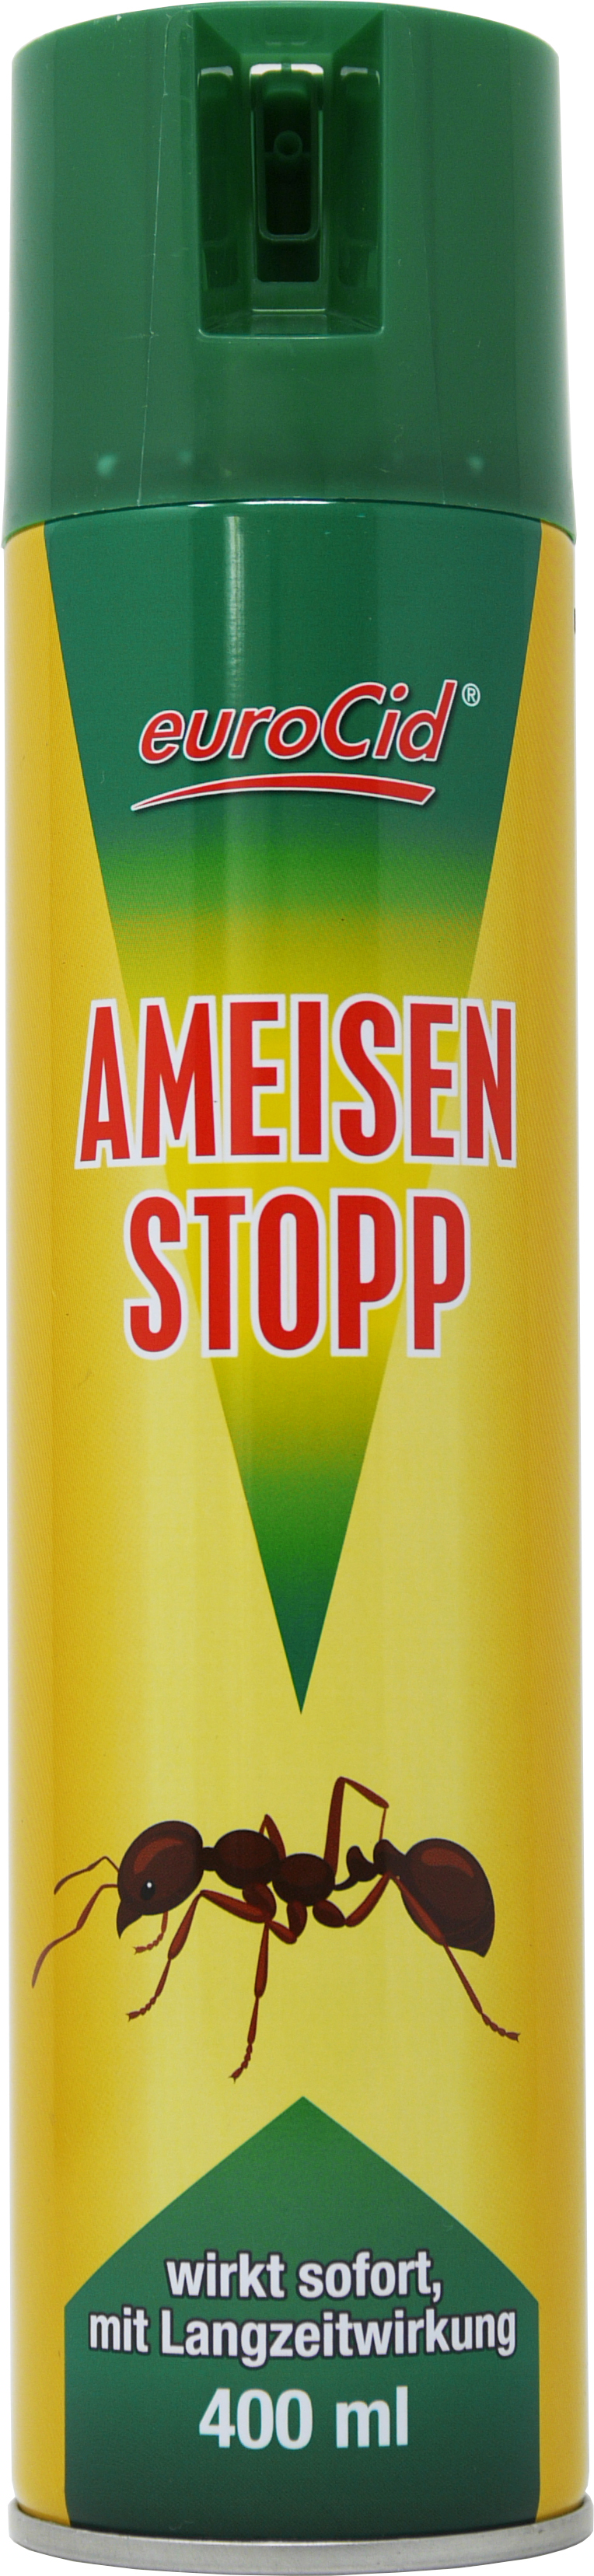 02191 - euroCid Ameisen Stopp Spray 400 ml BIOZID